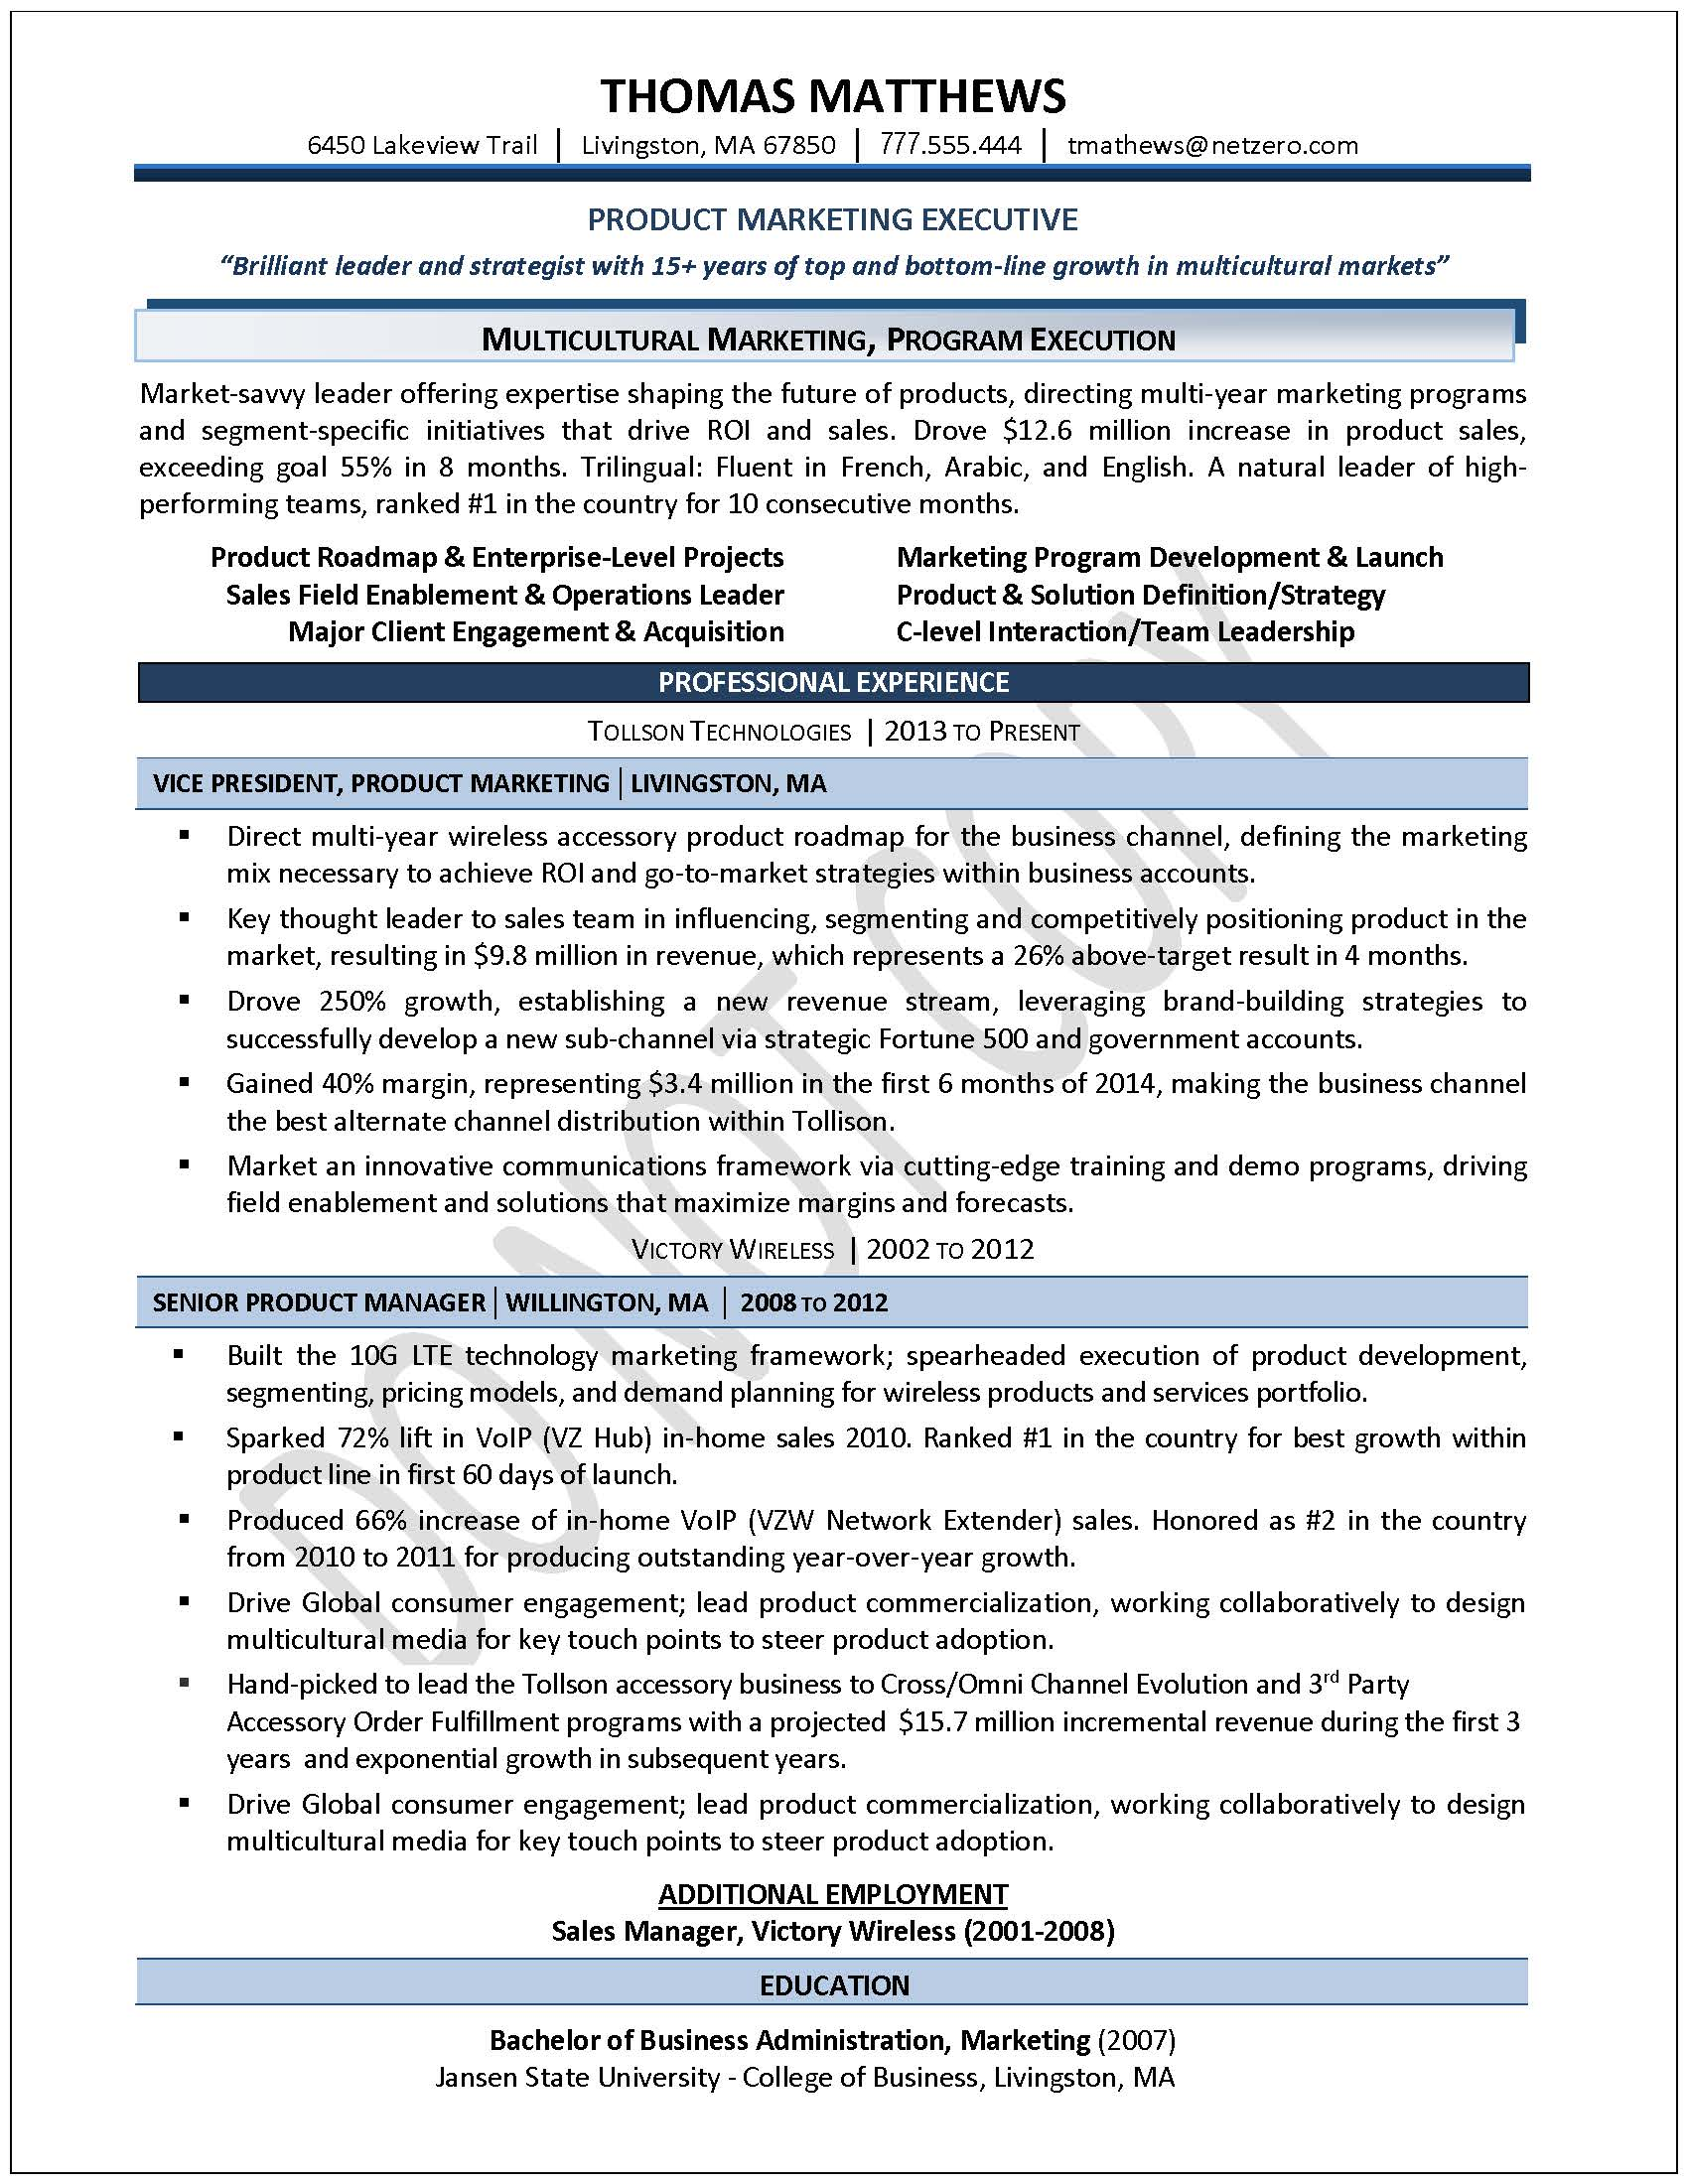 Resume Samples For Professionals Executive Resume Samples Professional Resume Samples